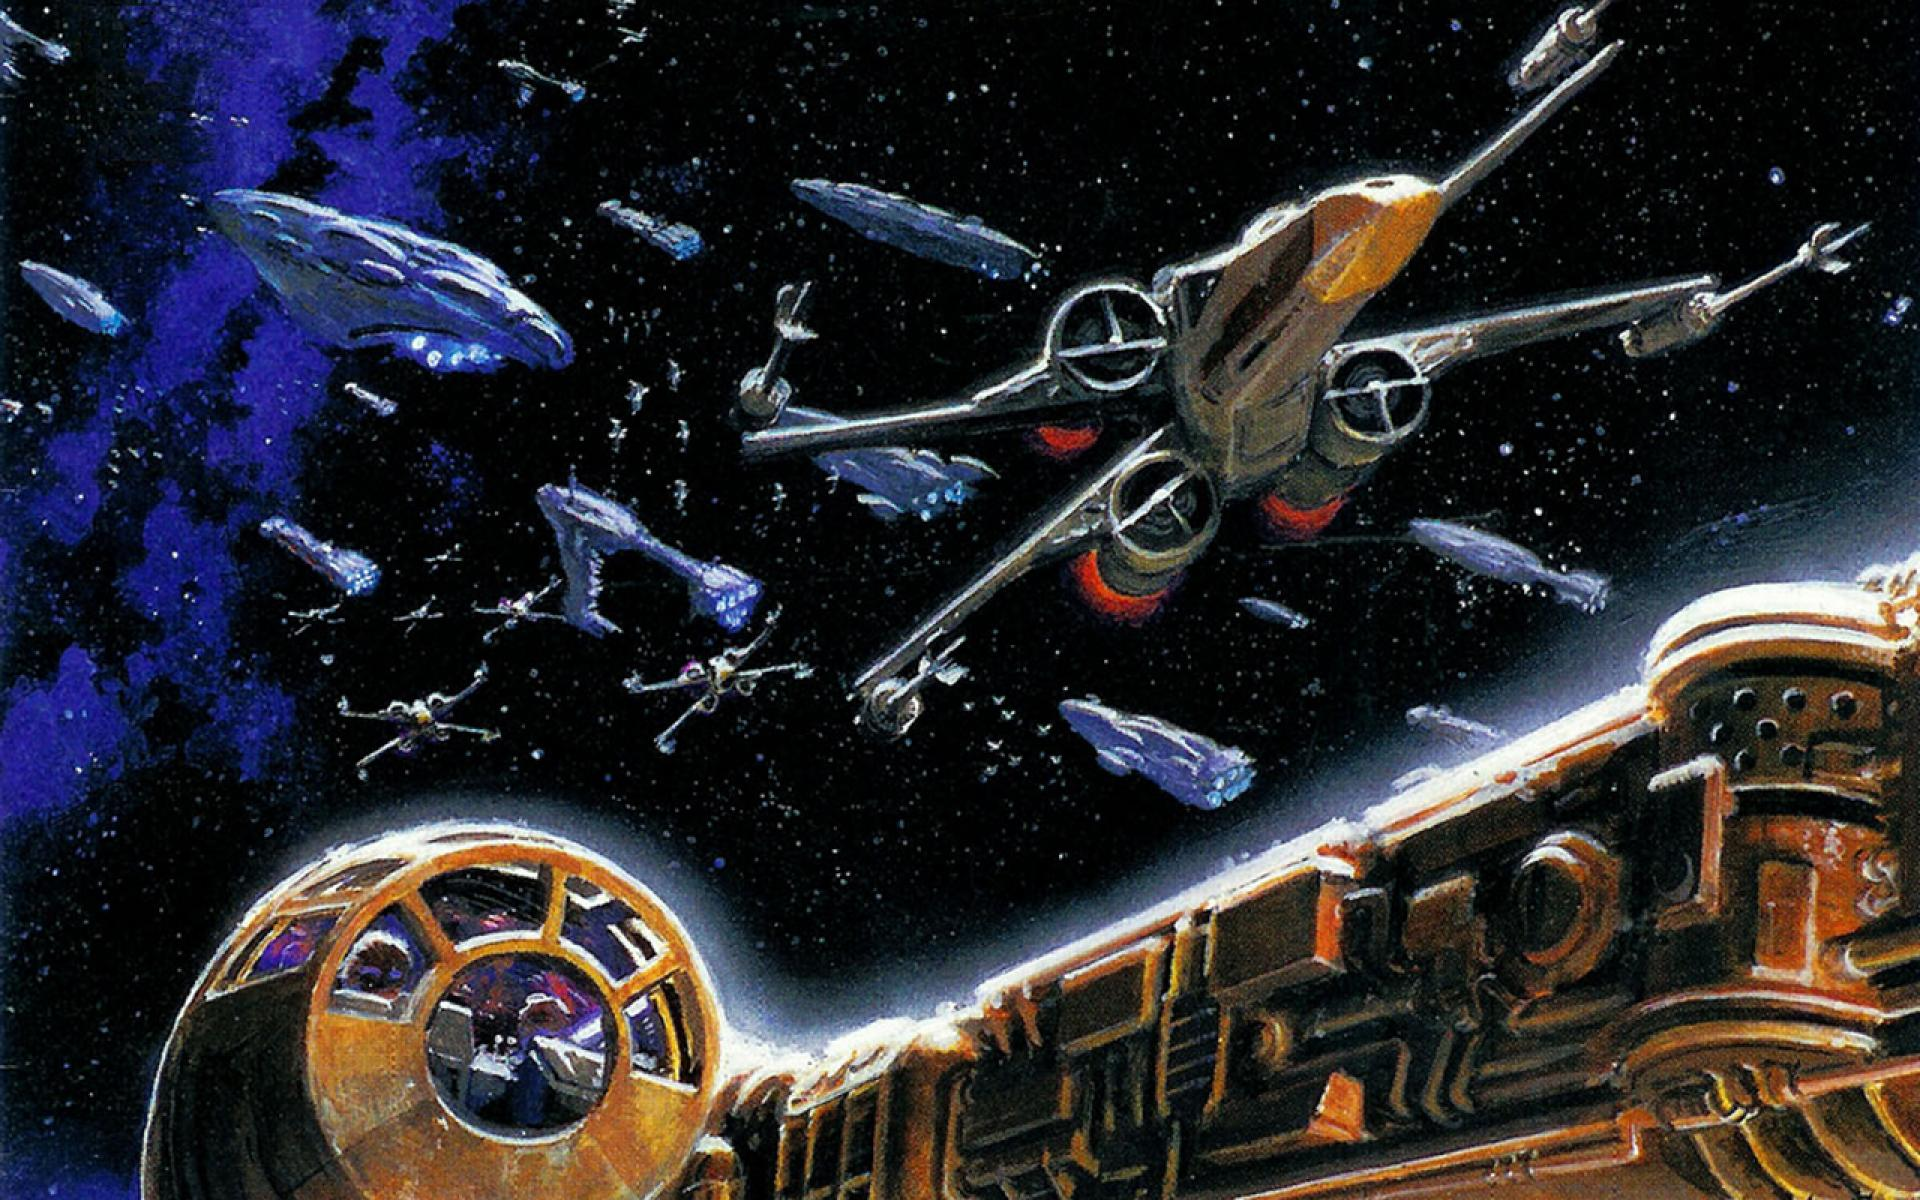 wallpapers to downloadMillennium falcon star wars x wing battles 1920x1200